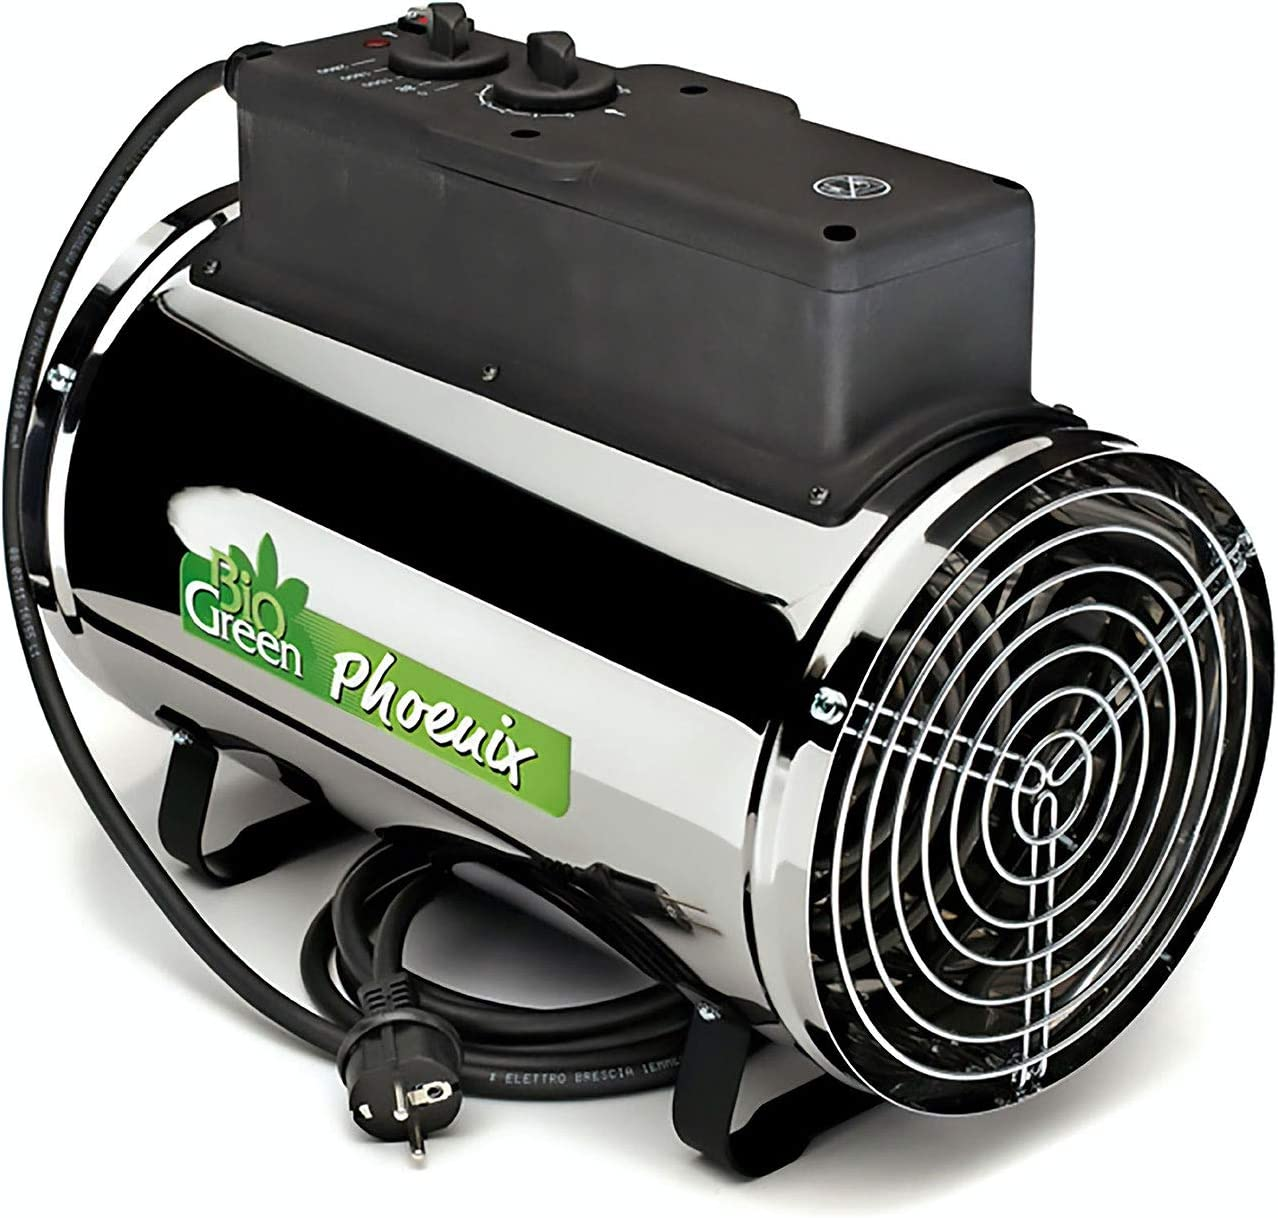 Bio Green PHX 2.8/US Phoenix Electric 3412/6141/9553 BTU 1000/1800/2800 W 220-240 V Greenhouse Heater, 2 Years Warrenty, 41 x 22 x 33 cm, stainless steel